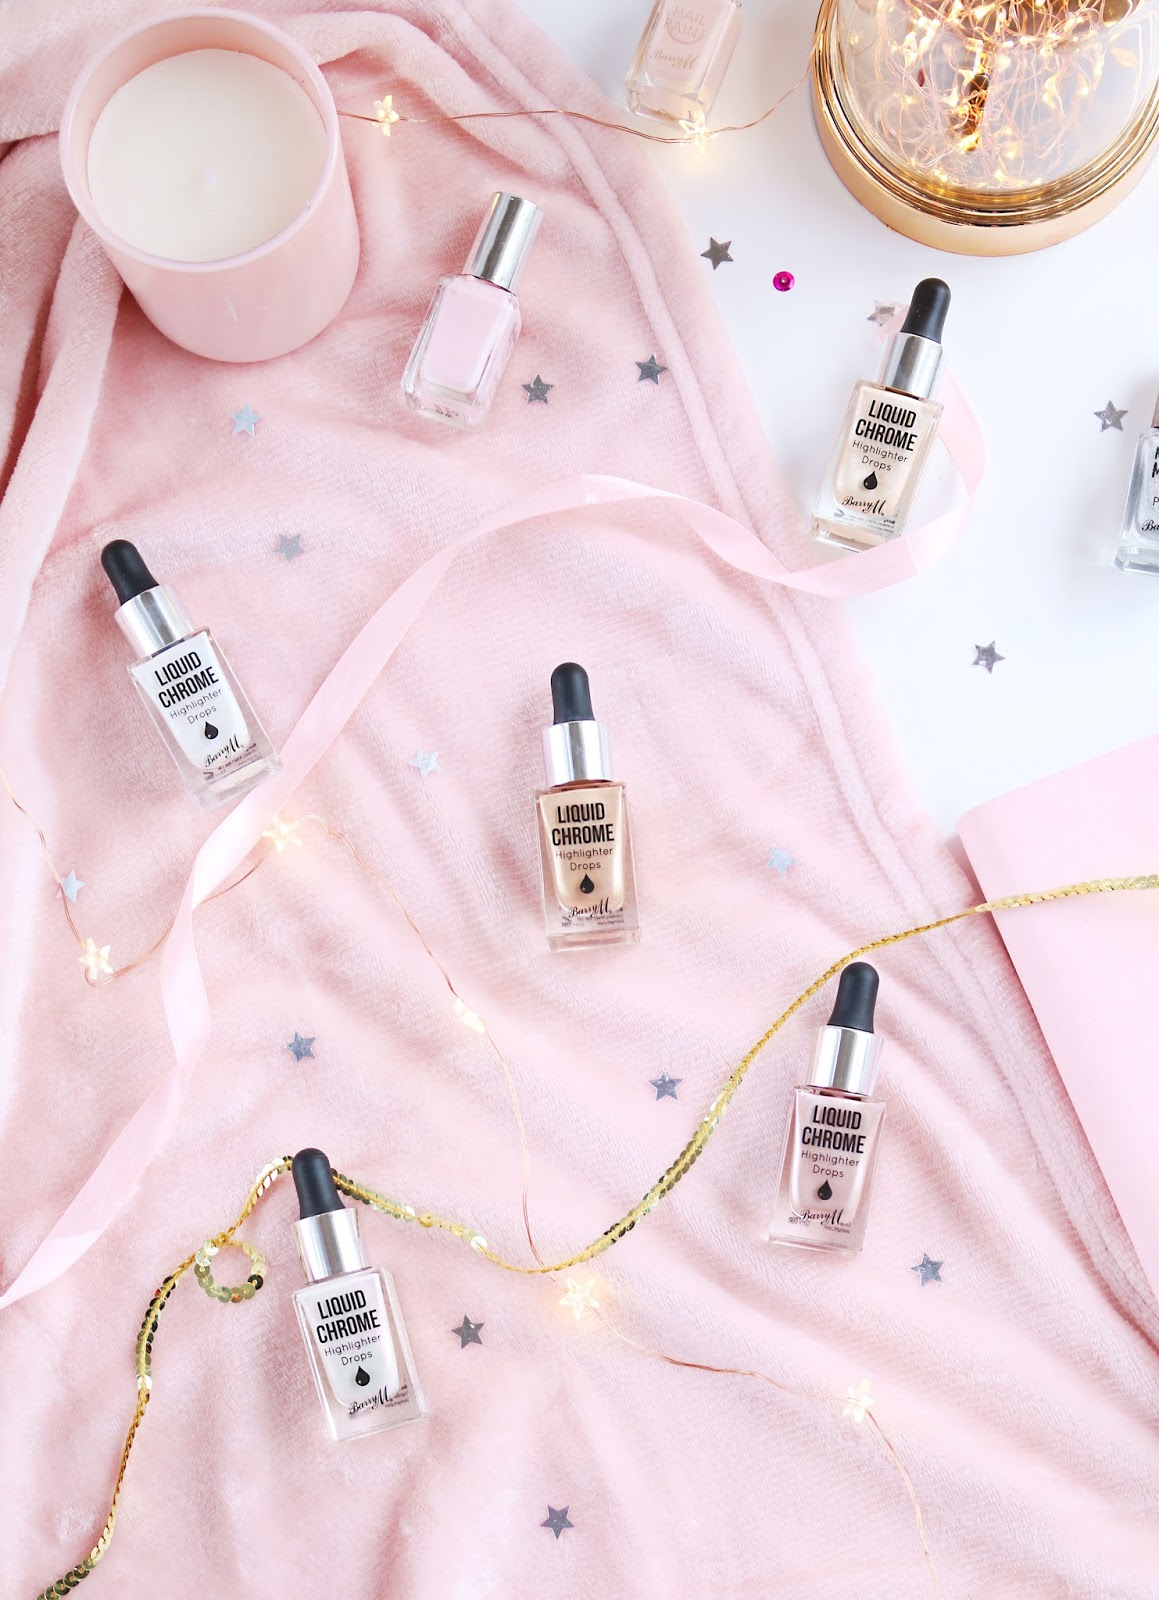 Barry M Liquid Chrome Highlighter Drops, Barry M new highlighter, Barry M, liquid highlighter, barry m chrome highlighter drops review, Beauty, Drugstore, Highlighters, Make Up,